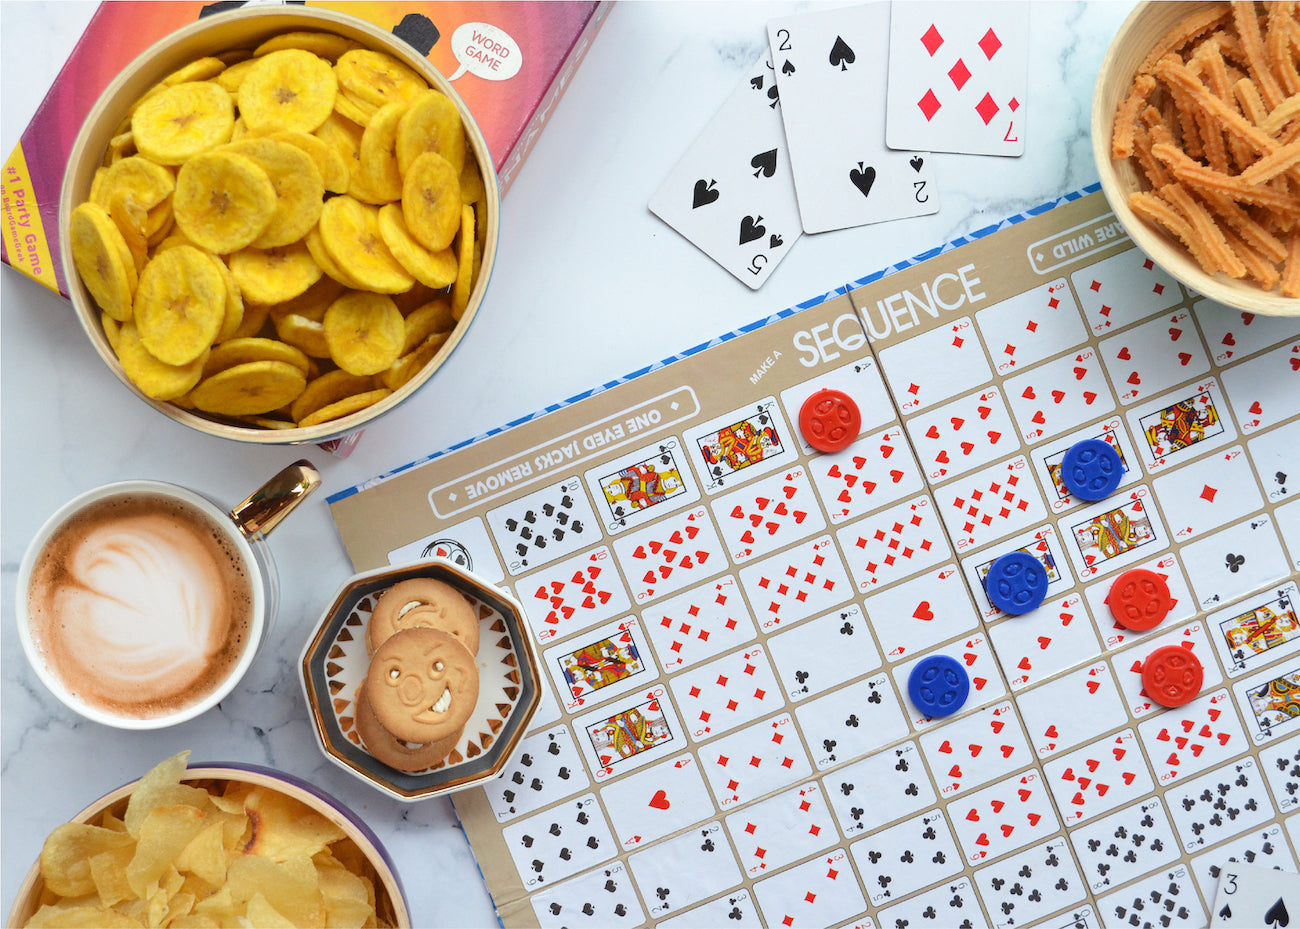 Board Games and Snacks